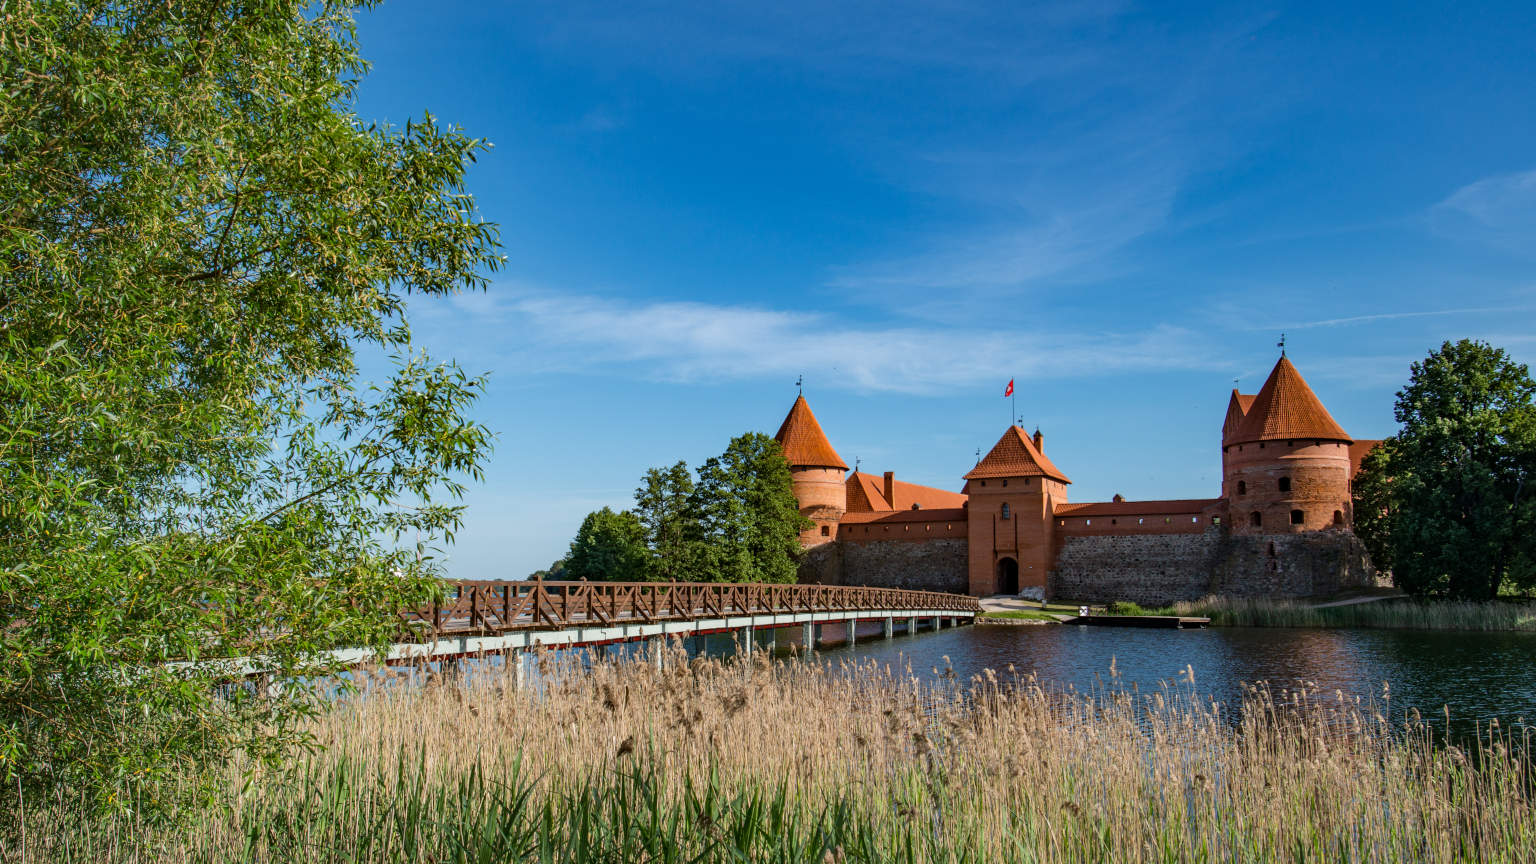 Baltics-Trakai-Island-Castle-Richard-James